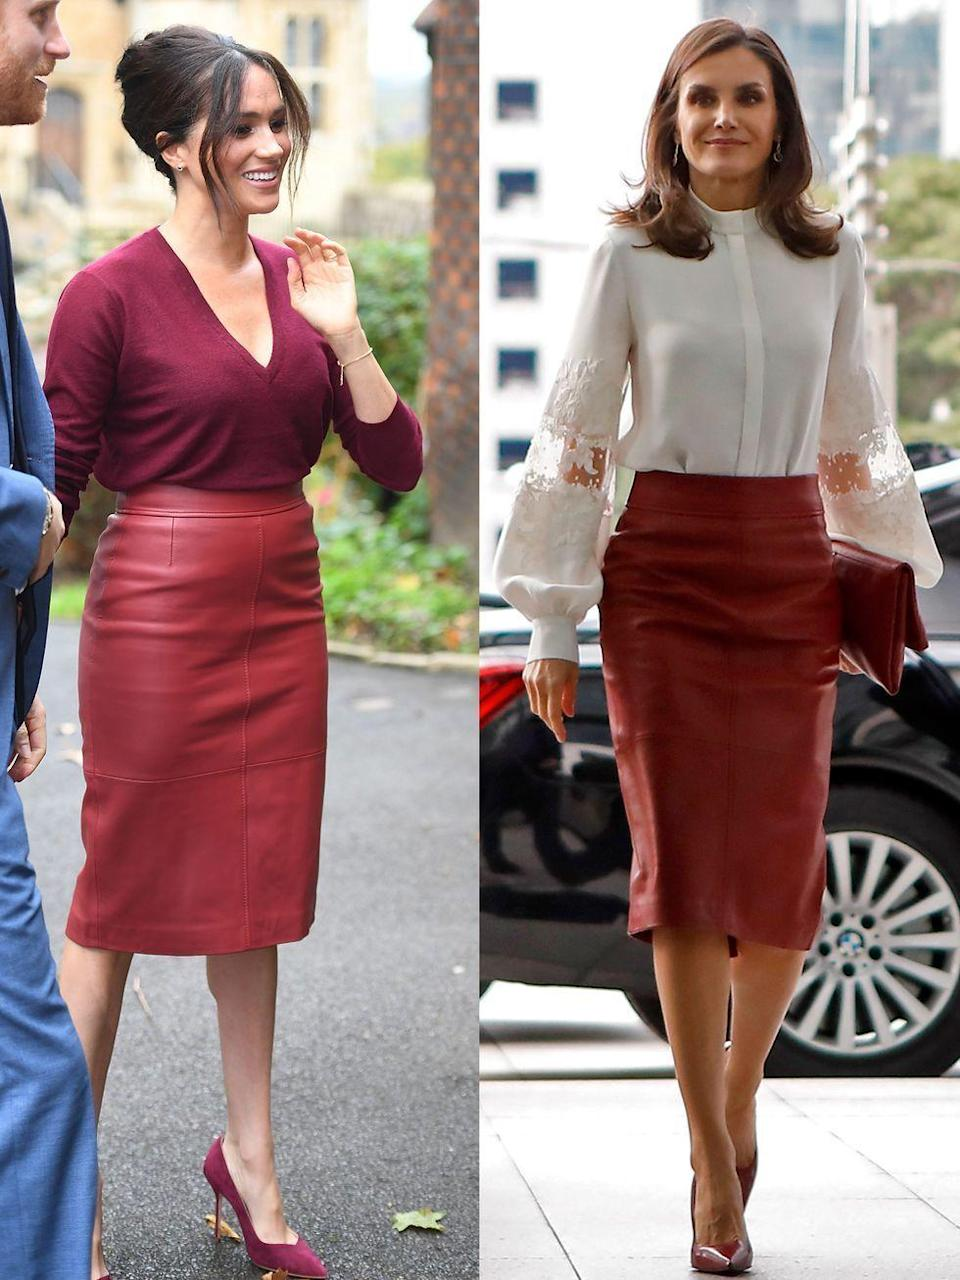 <p><strong>Left: </strong>On October 24, 2019, Meghan, Duchess of Sussex attended a roundtable discussion about gender equality as part of the One Young World summit, wearing a chic red leather Hugo Boss pencil skirt with a burgundy v-neck sweater.</p><p><strong>Right: </strong>On the same day, Queen Letizia of Spain twinned with the Duchess for a meeting in Seoul, only she paired the skirt with a crisp white blouse.</p>